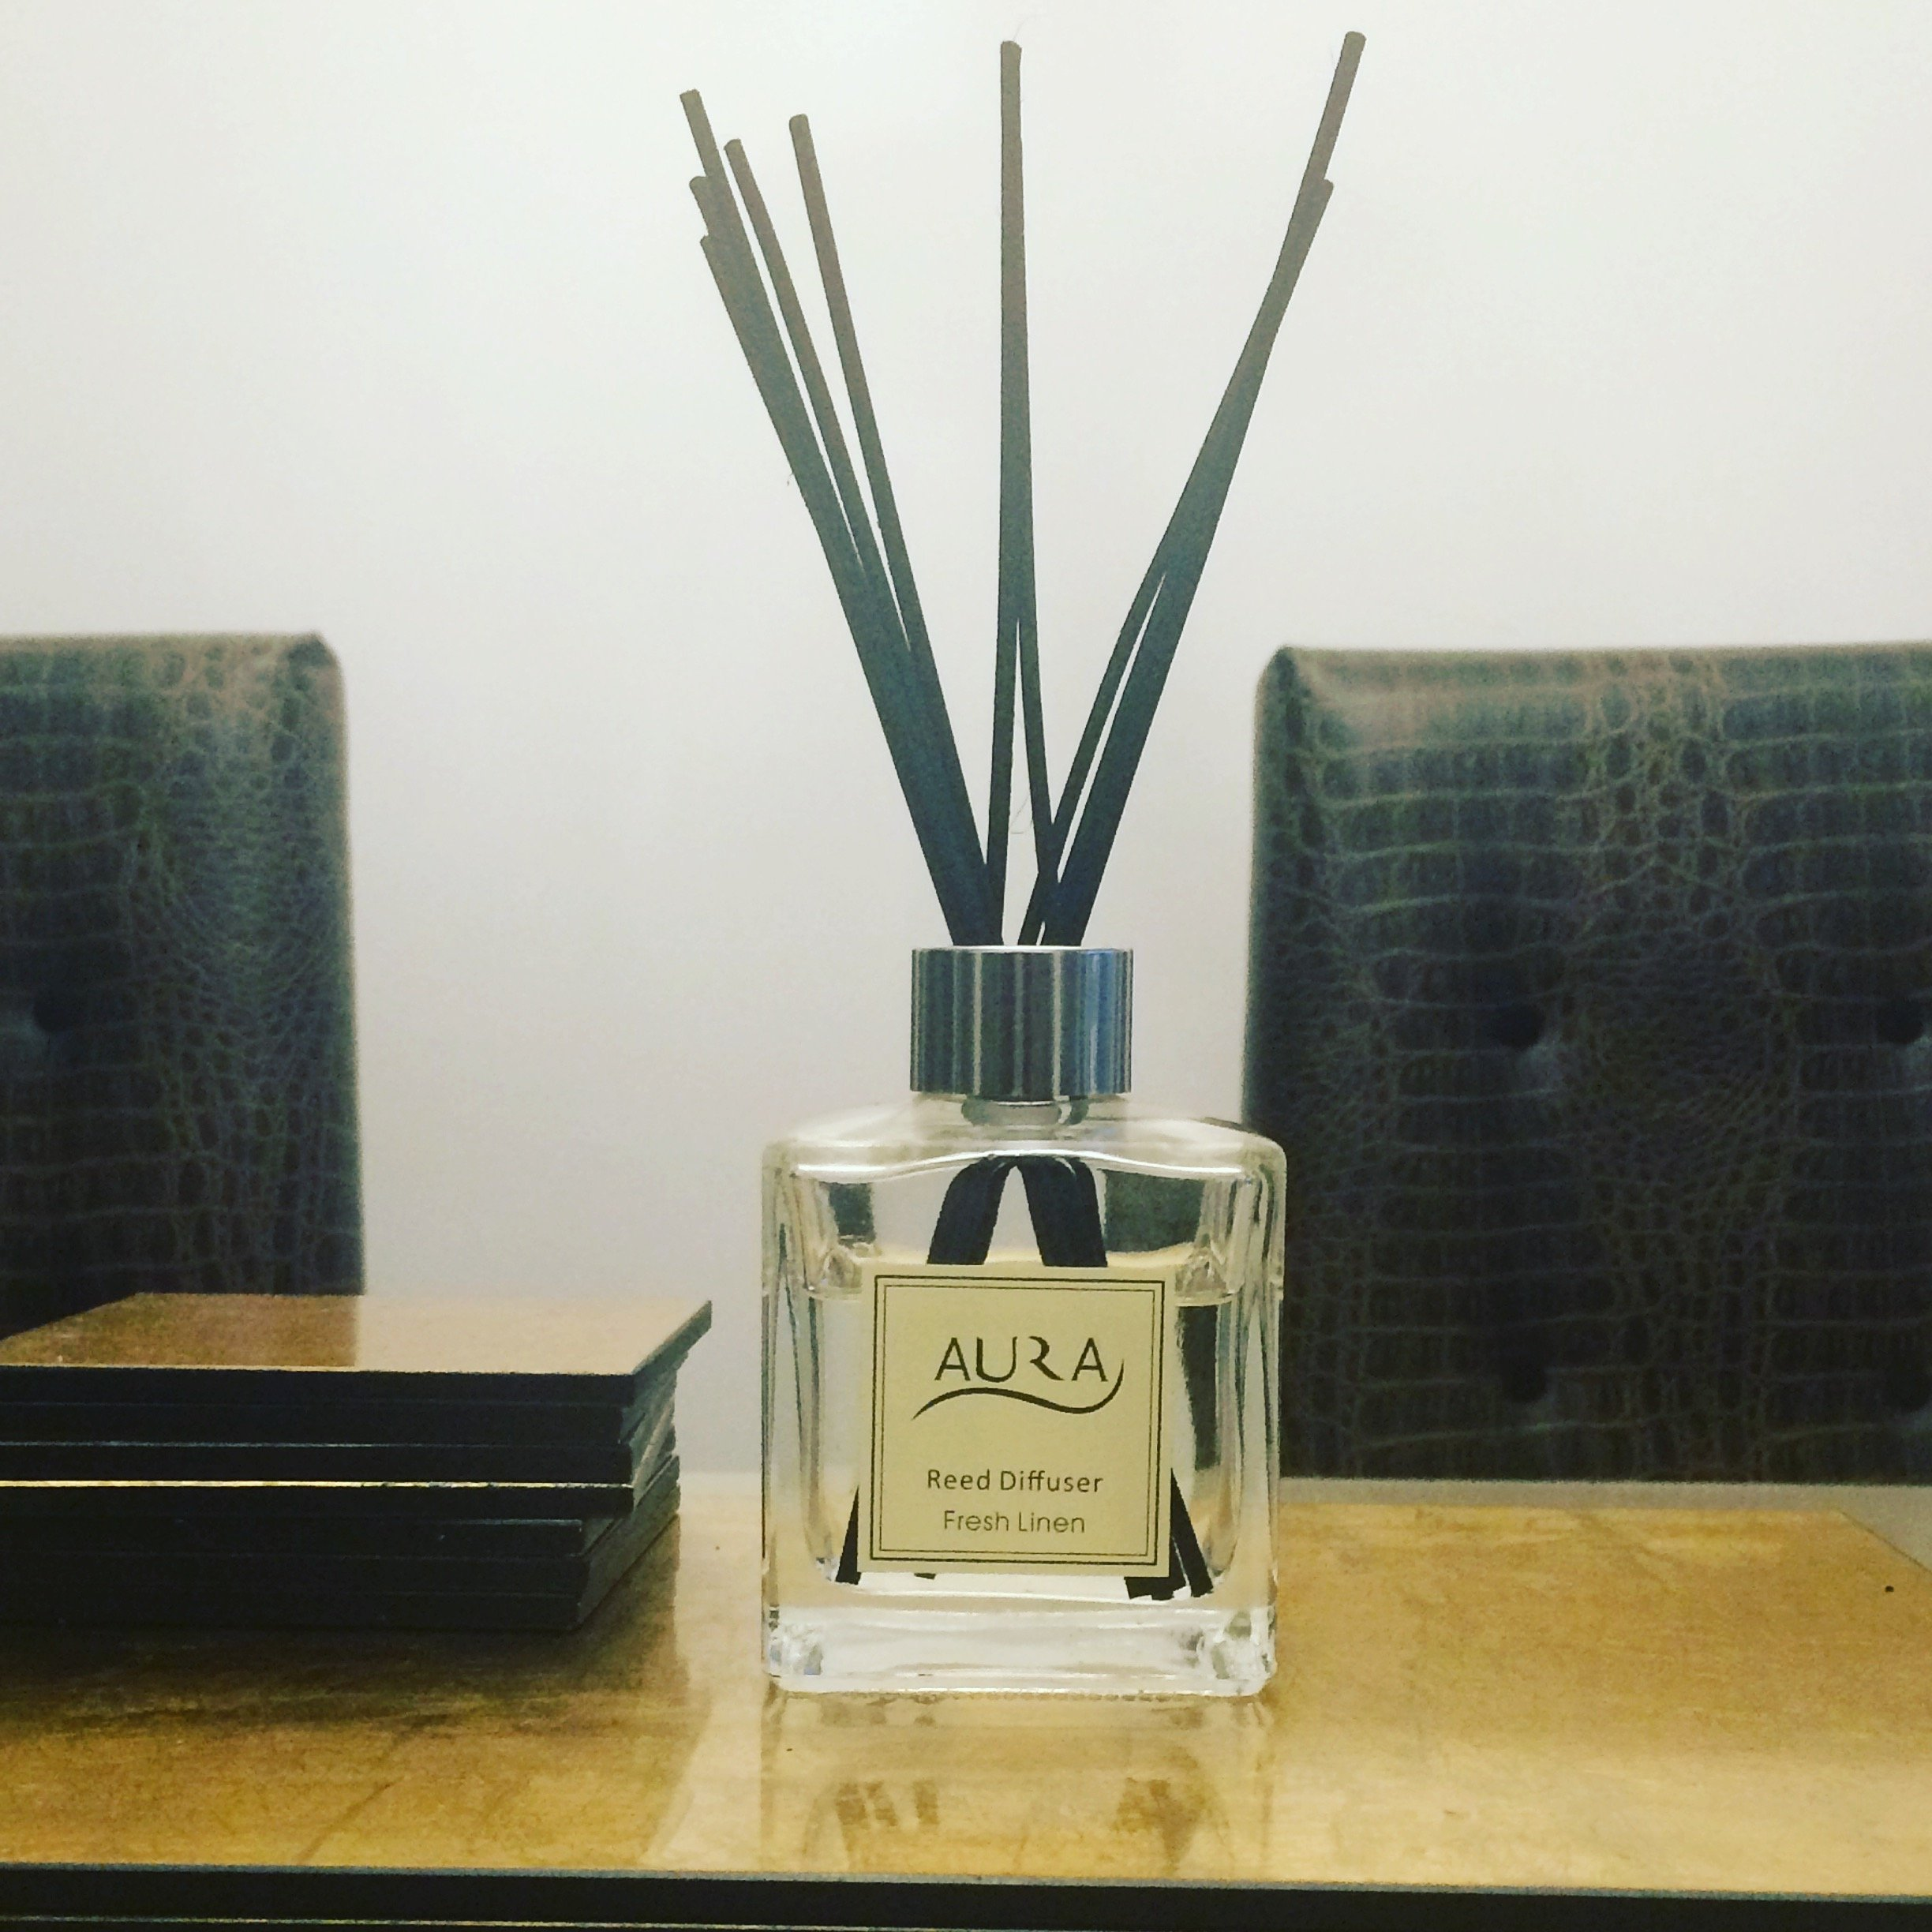 Luxury Reed Diffuser with 10 Reed Sticks, 120ml, Fresh Linen by Aura (Image #2)